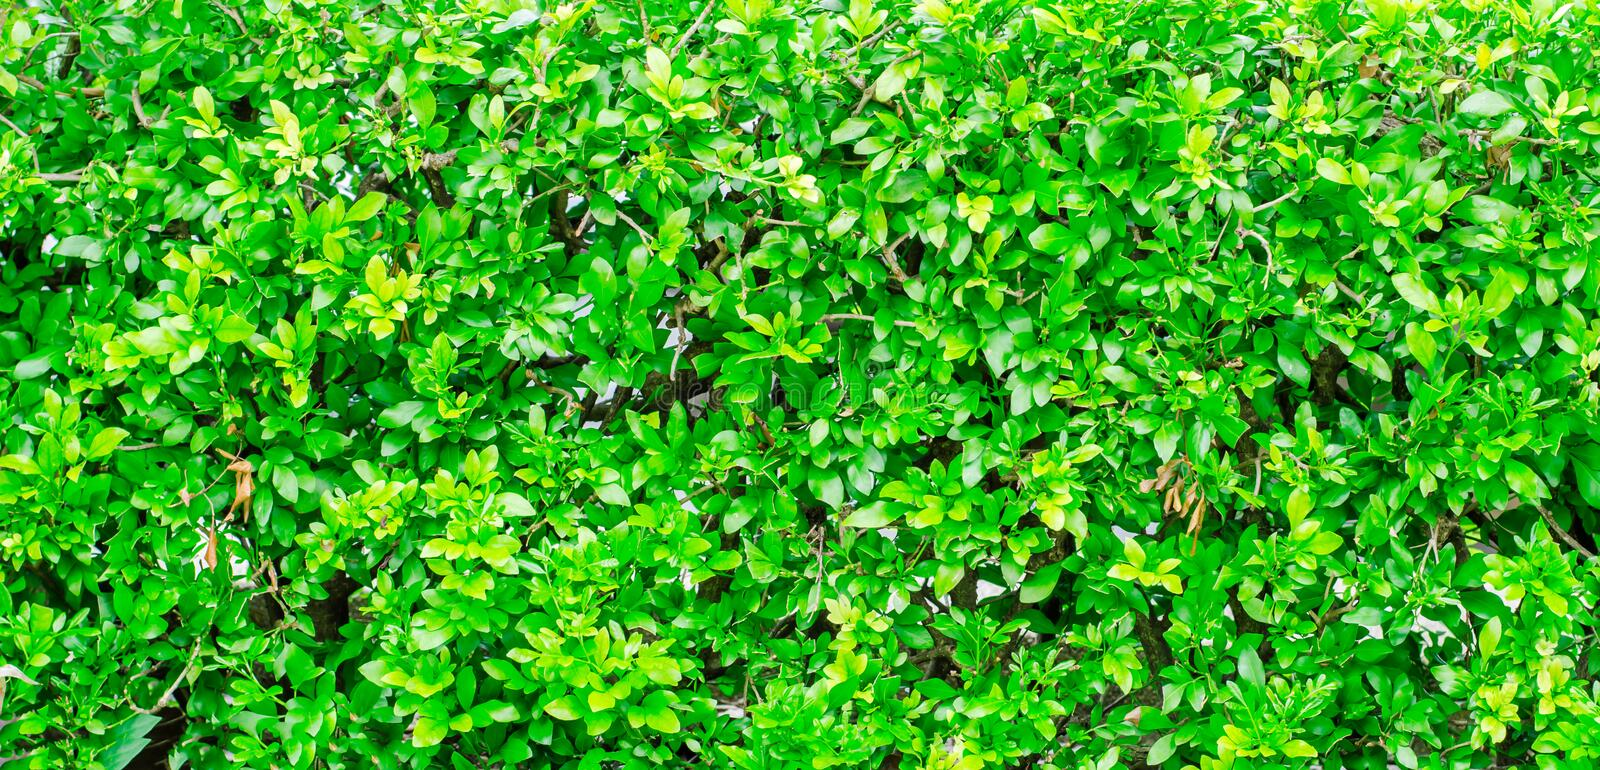 Green Fence Bush texture background. Park and Outdoor royalty free stock image